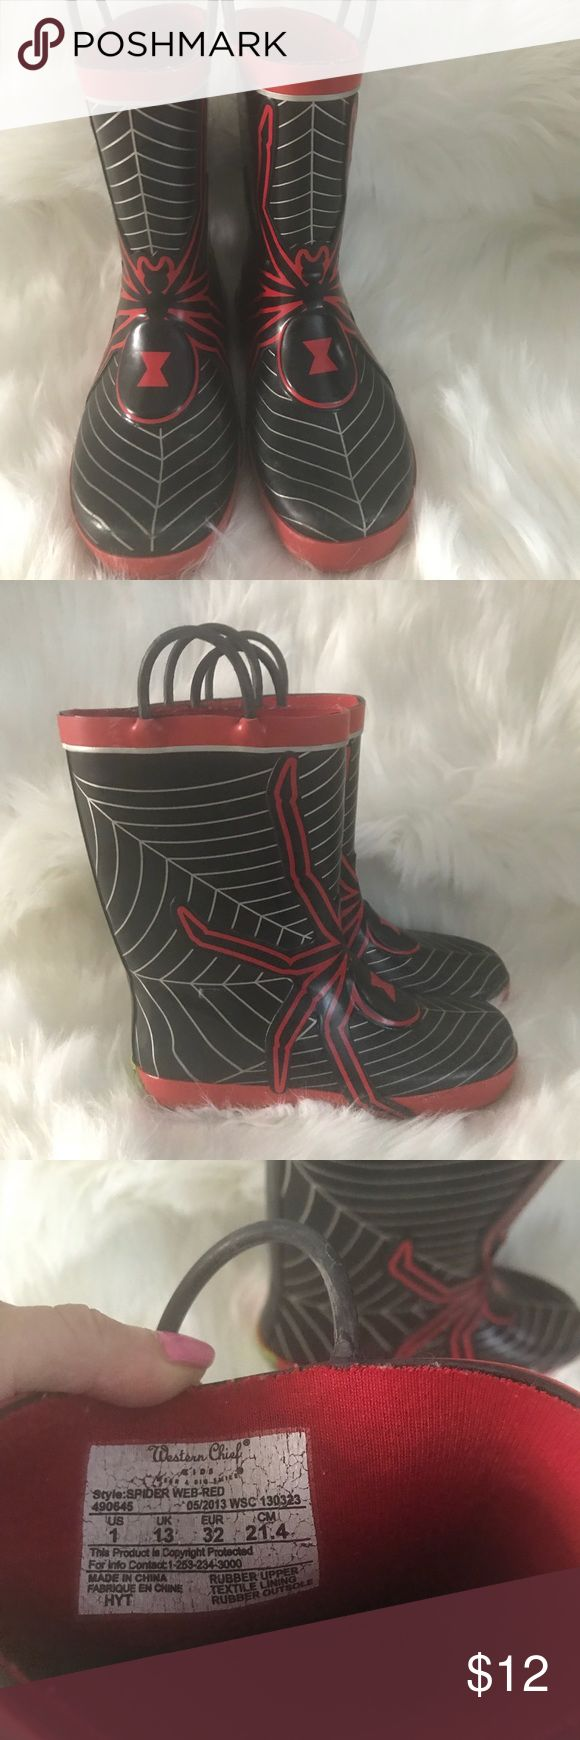 Boys Spider 🕷 Man rain and snow boot size 1 Boys Spider 🕷 Man rain and snow boot size 1 Shoes Rain & Snow Boots